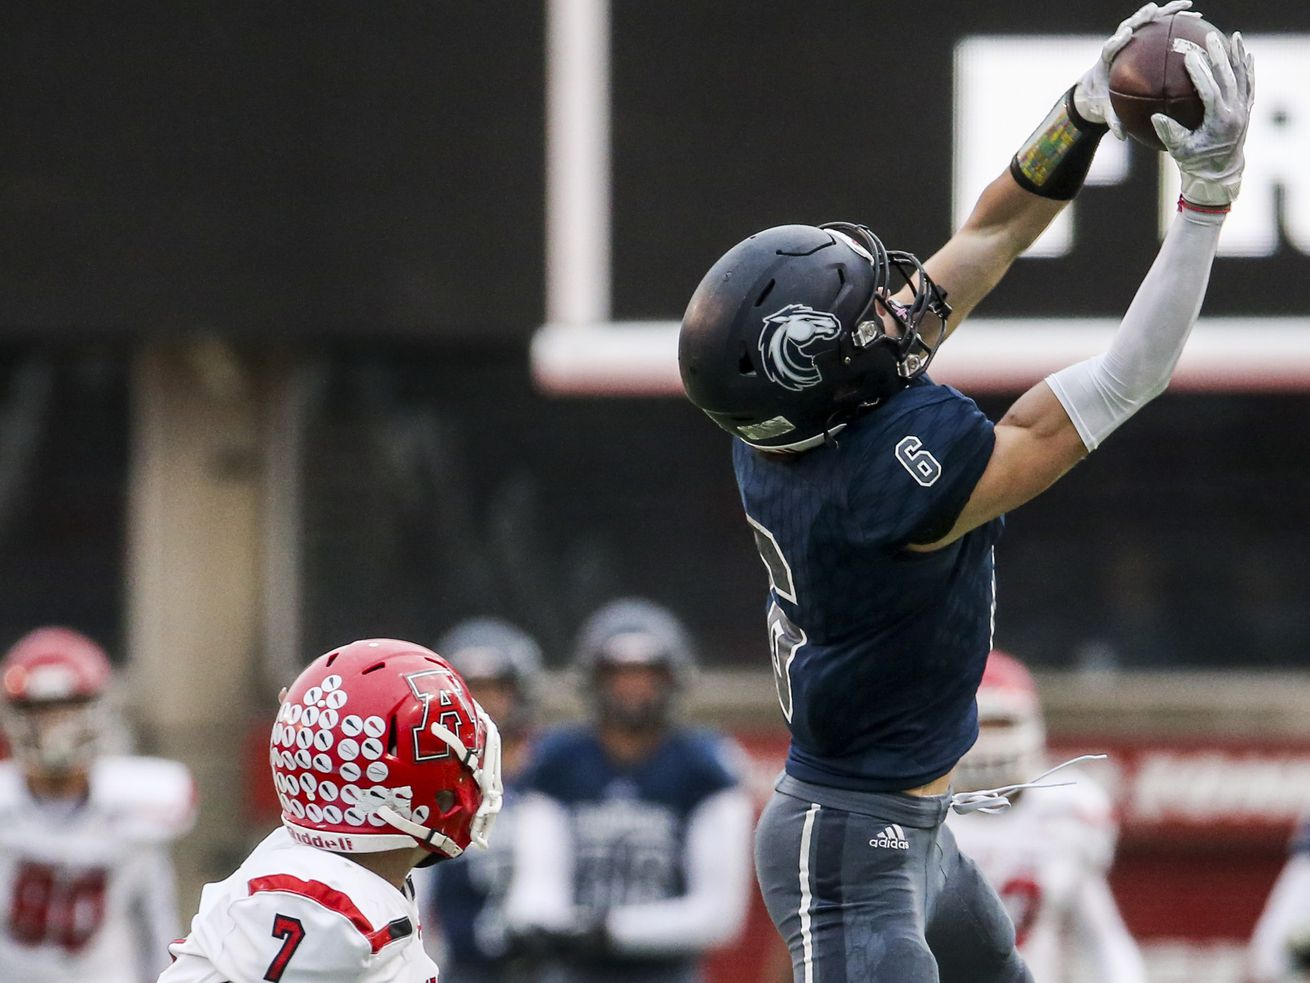 Corner Canyon wide receiver Talmage Handley (6) makes a catch over the head of American Fork safety Peyton Wilson (7) during the first half of the 6A state high school football game at Rice-Eccles Stadium in Salt Lake City on Friday, Nov. 22, 2019.